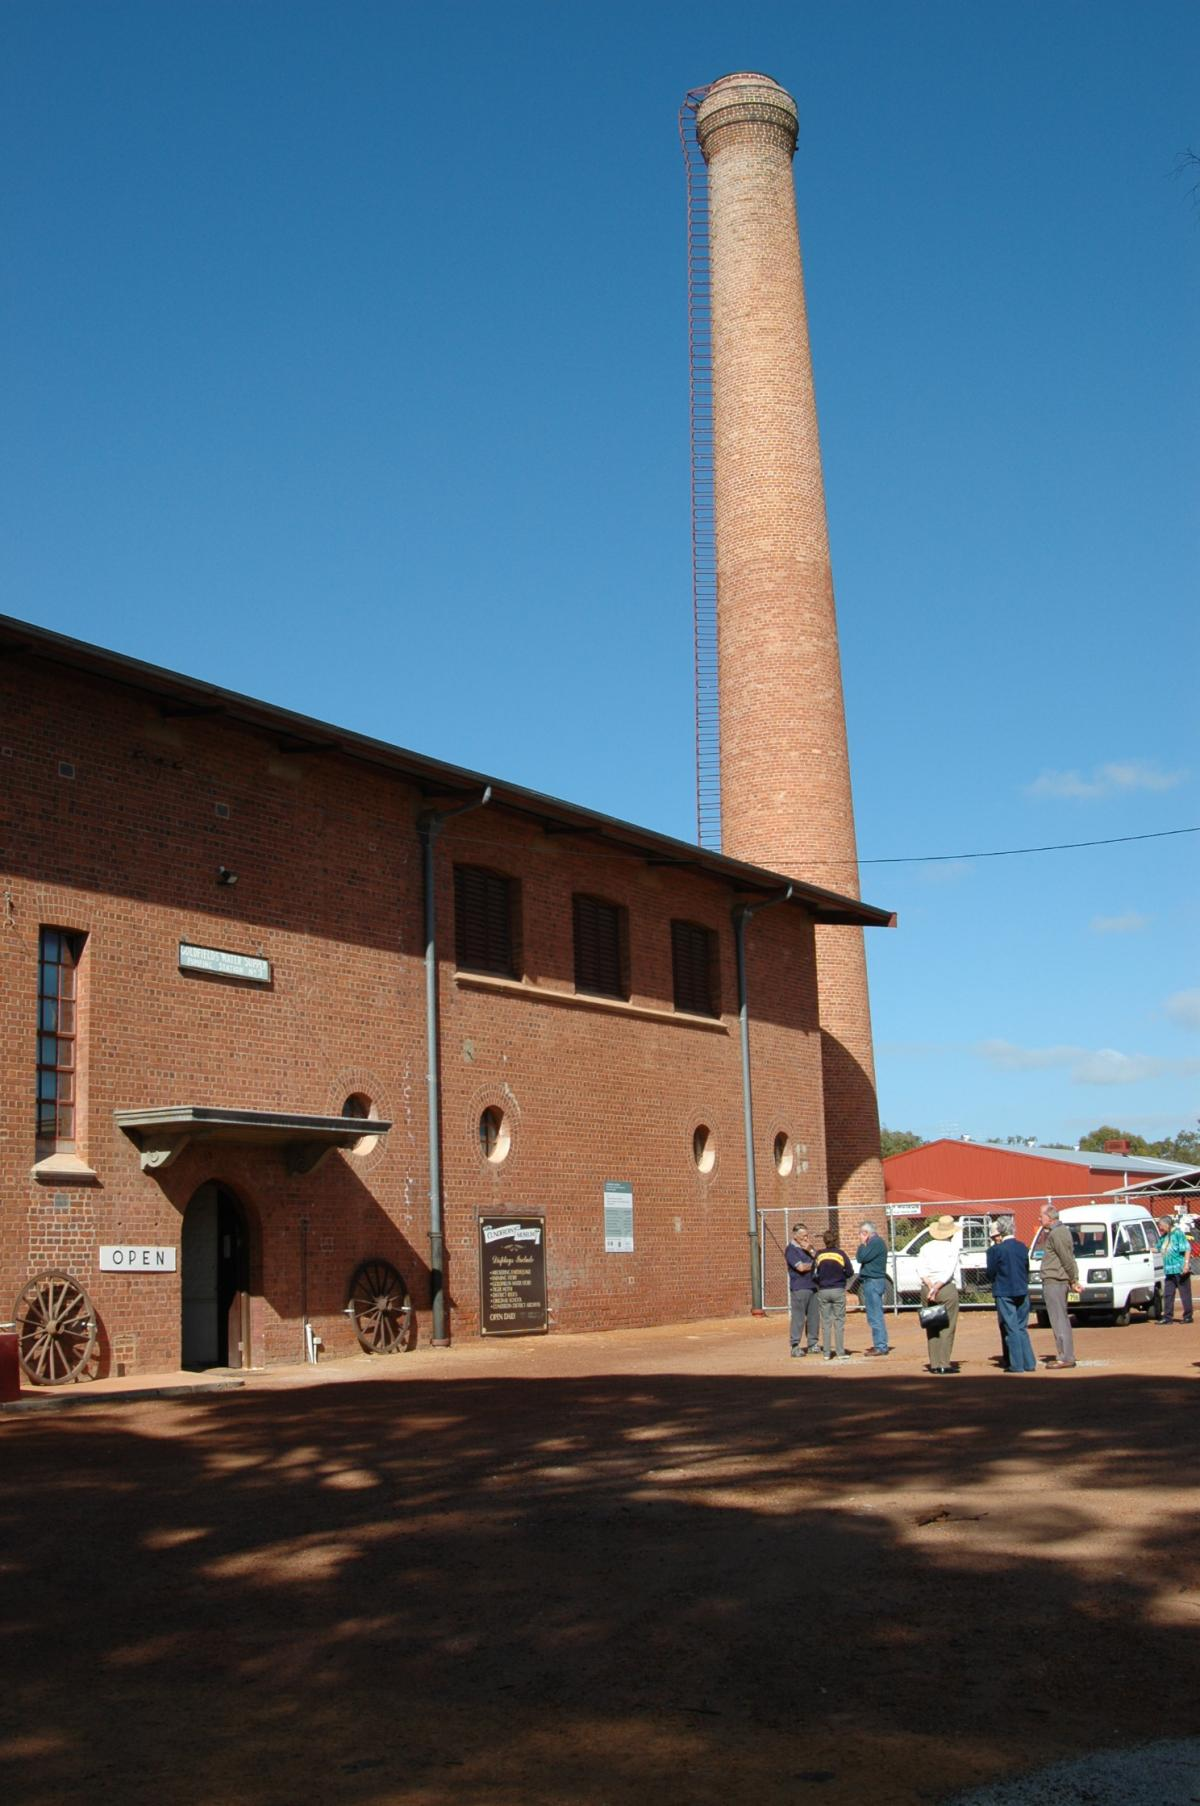 Cunderdin Historical Society large building with very tall chimney